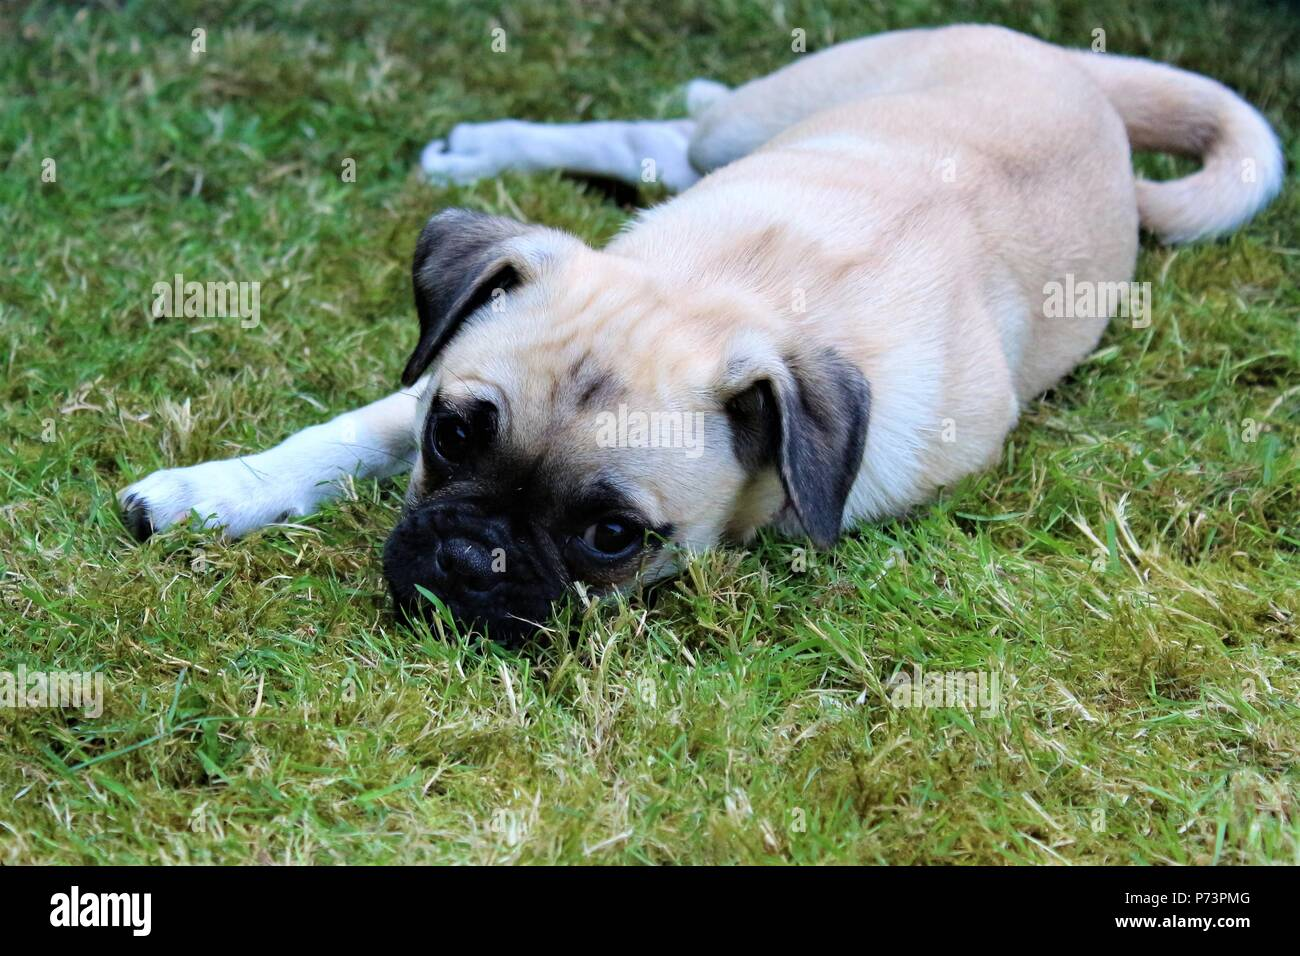 A three month old female Chug (Chihuahua cross Pug) puppy in a garden - Stock Image